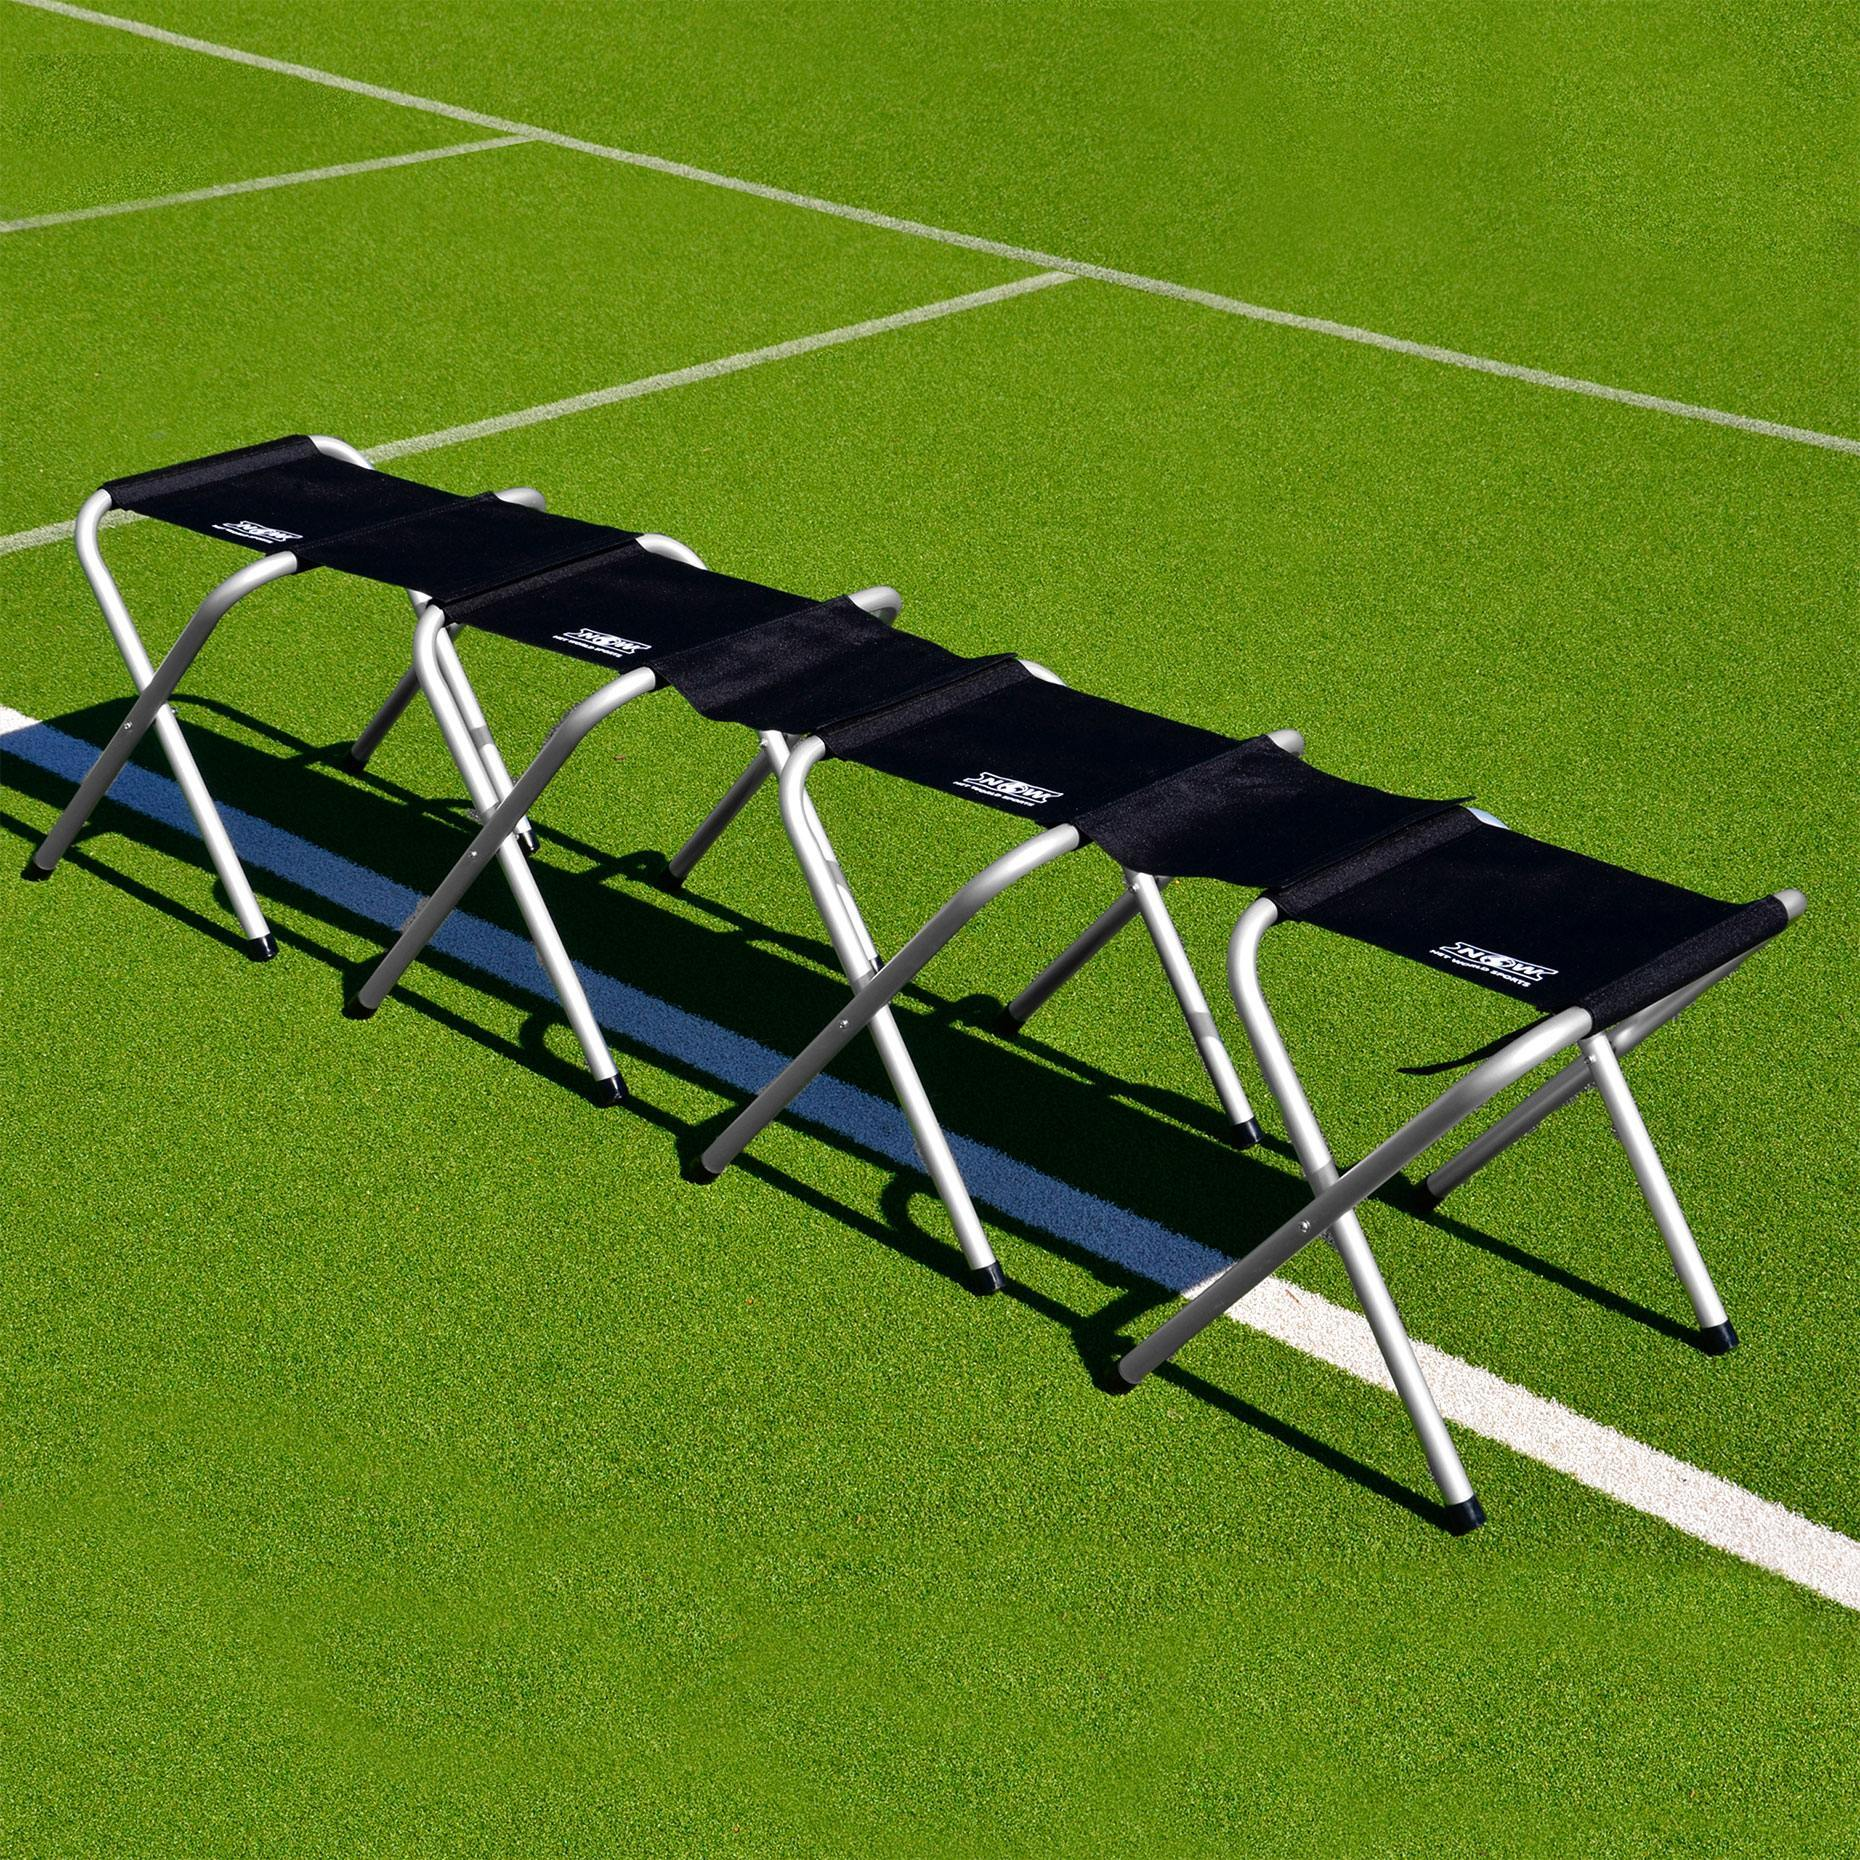 Folding Subs Bench 28 Images 6 Seater Folding Subs